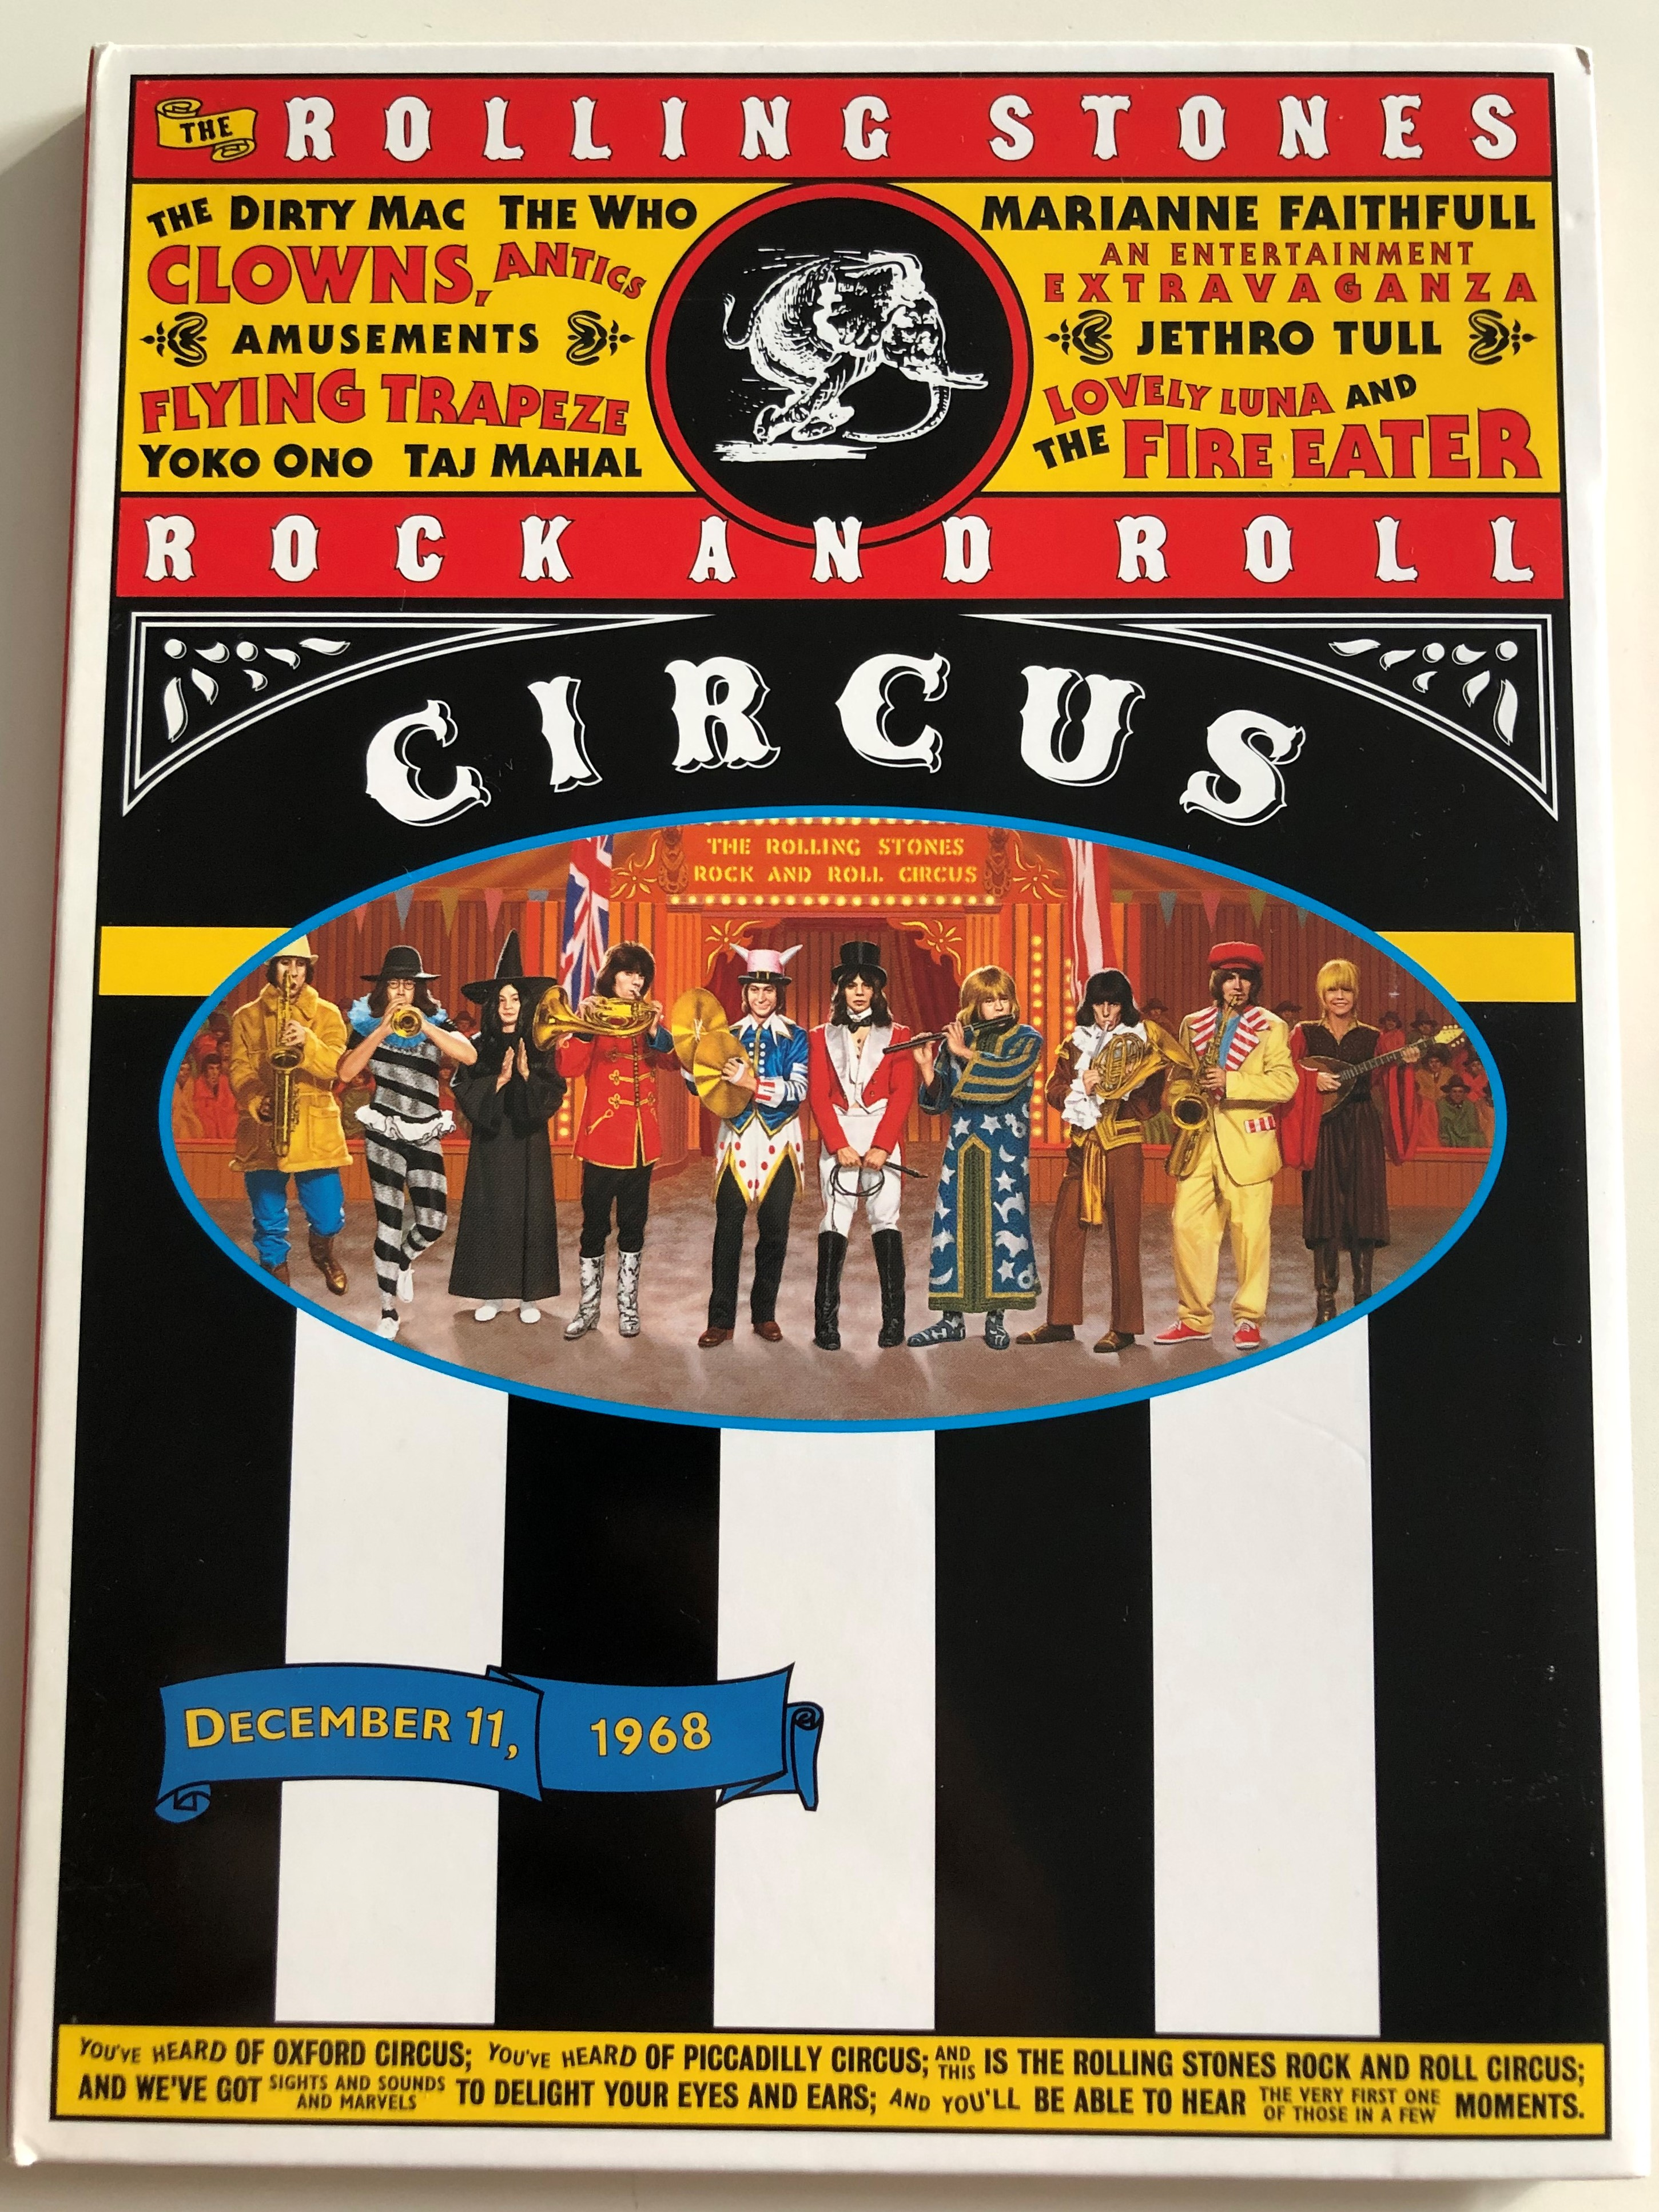 the-rolling-stones-rock-and-roll-circus-dvd-1968-directed-by-michael-lindsay-hogg-jethro-tull-the-who-the-dirty-mac-1-.jpg